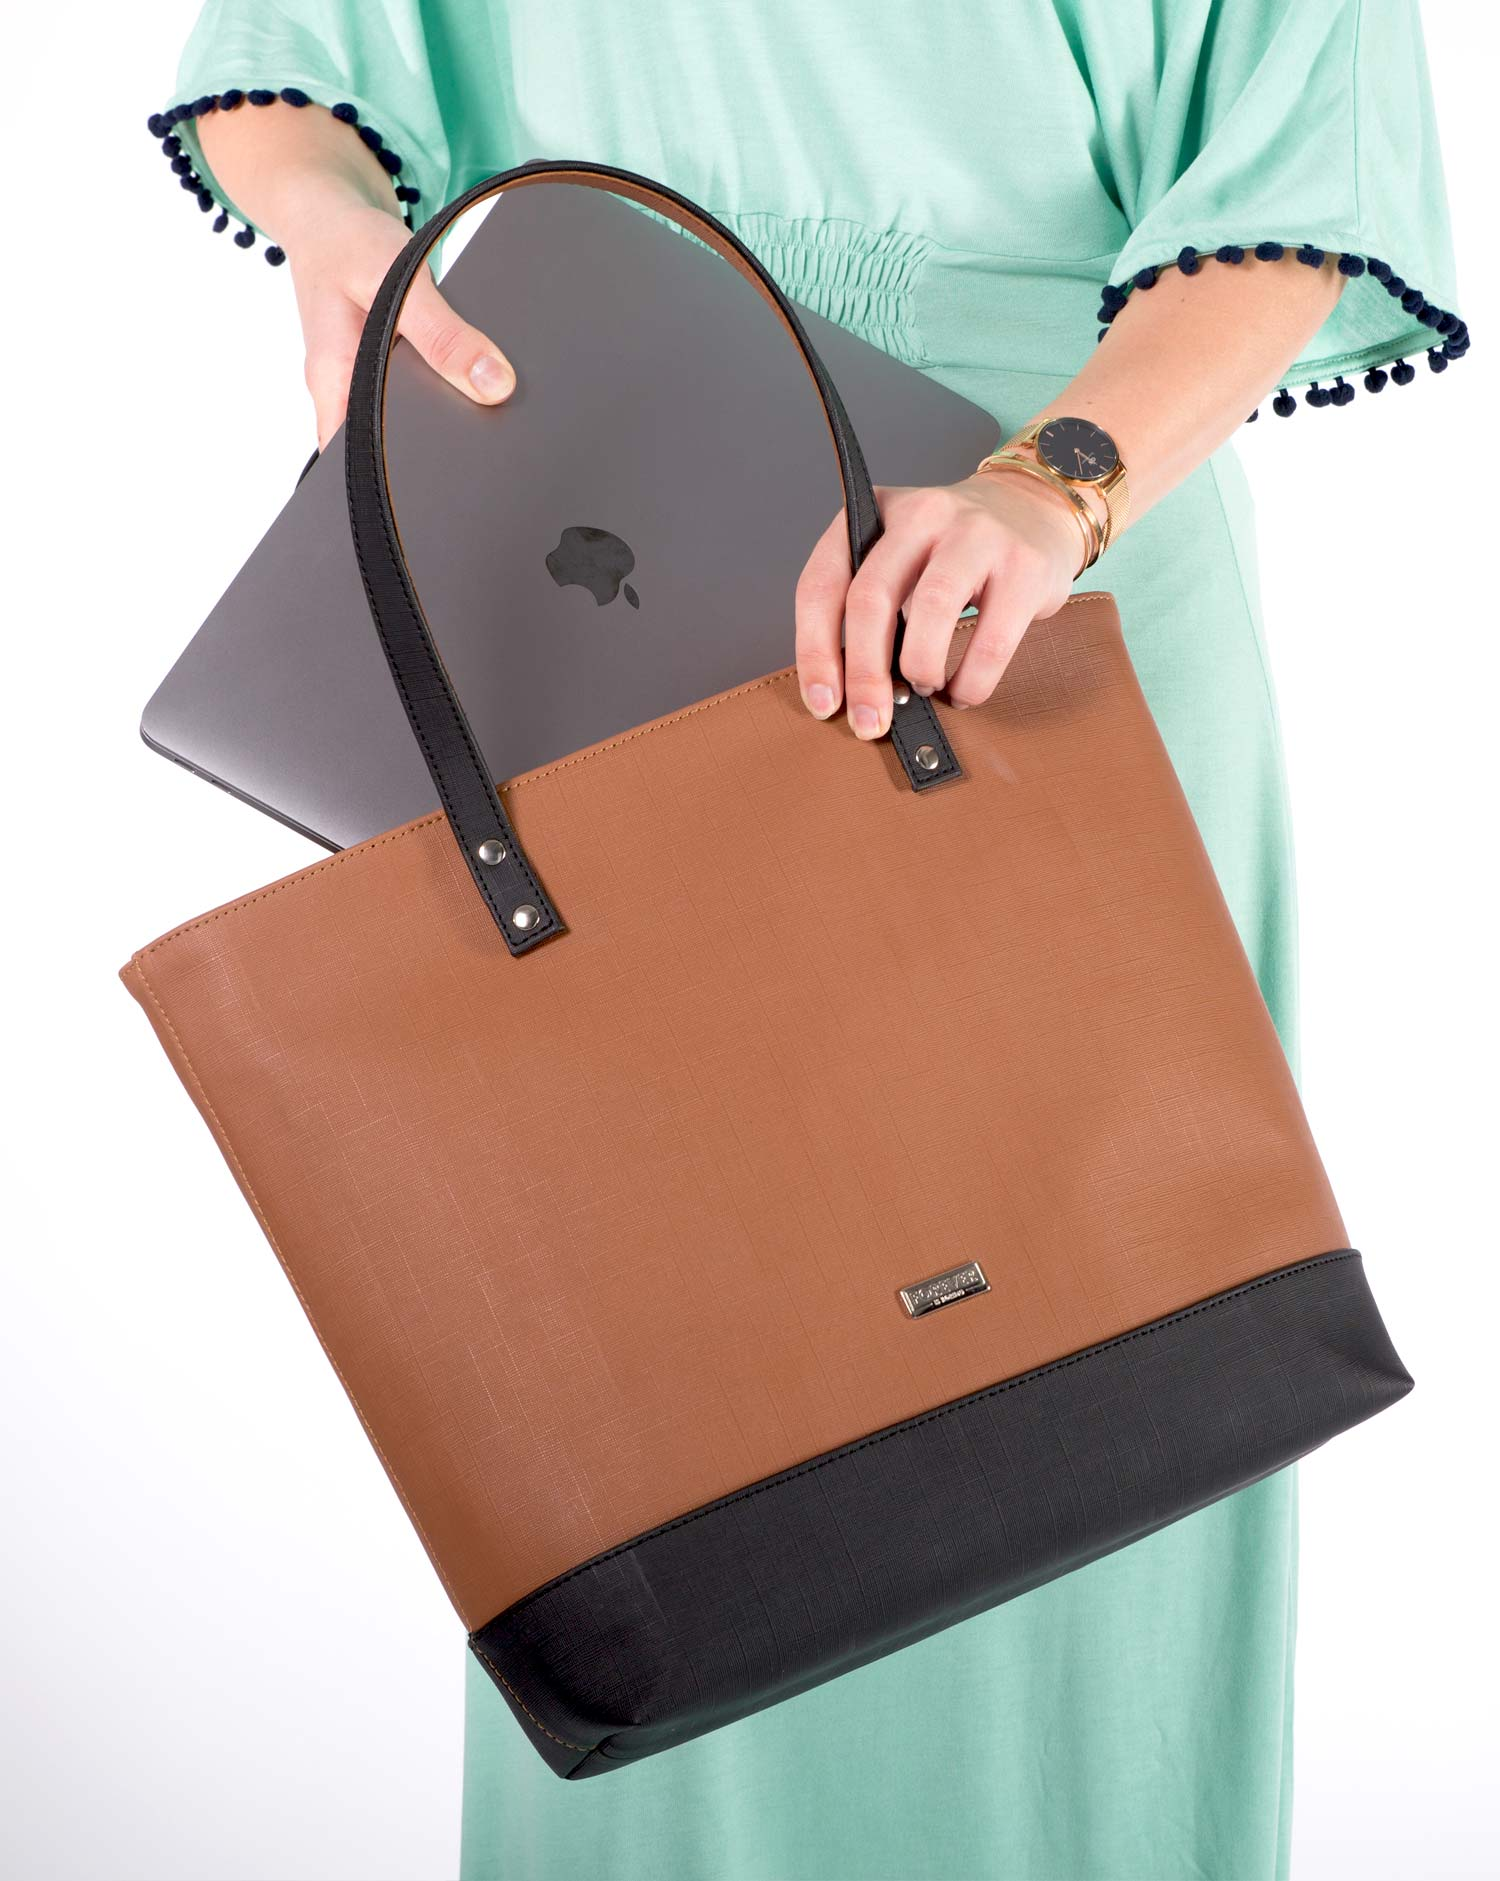 My Way Tote Bag Mala Bolso Caramel 2